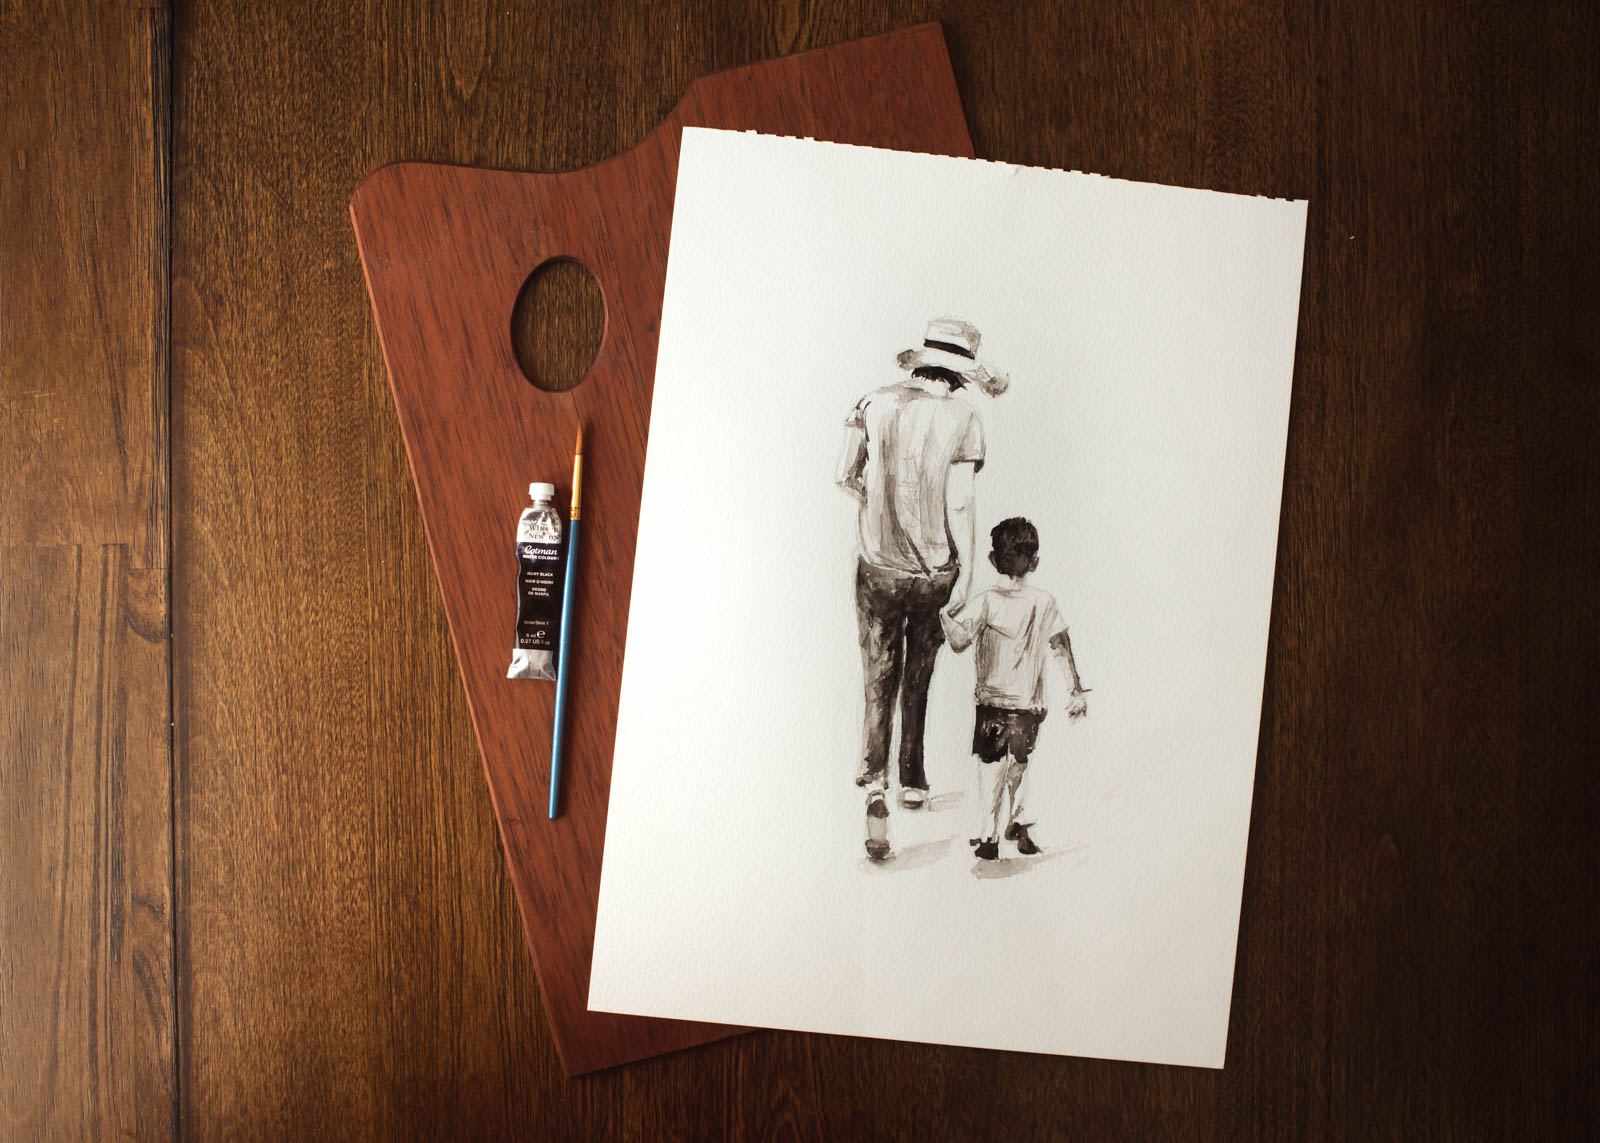 Painting of a mother and son walking by Sarah Gupta